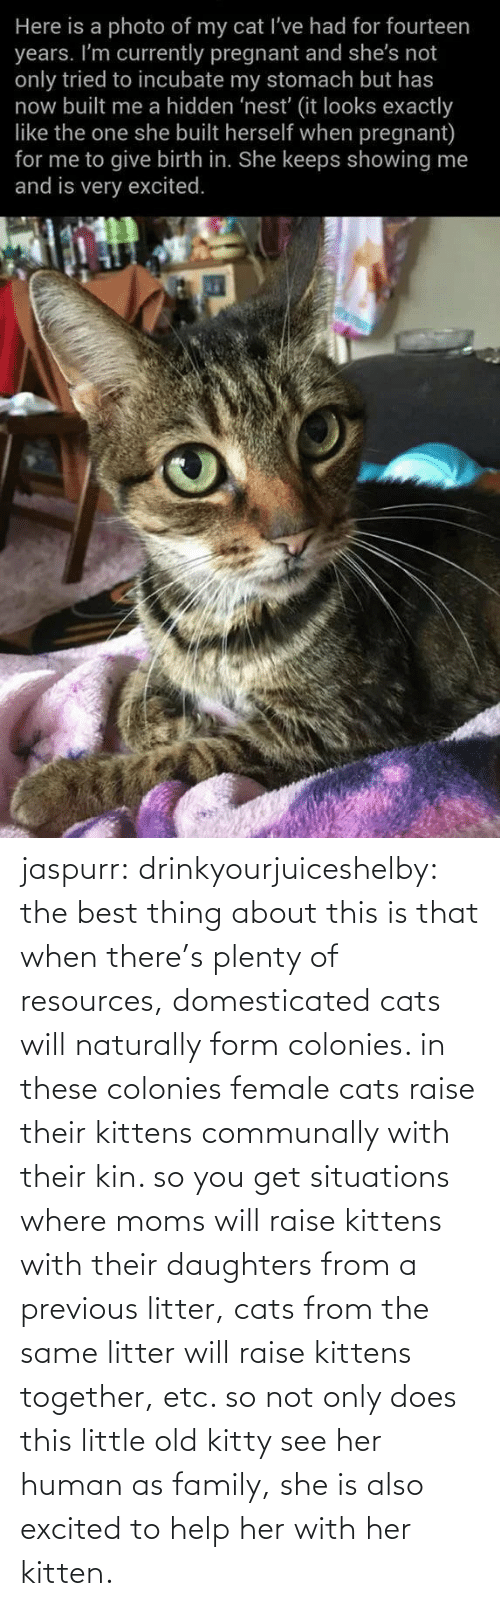 Cats: jaspurr:  drinkyourjuiceshelby:    the best thing about this is that when there's plenty of resources, domesticated cats will naturally form colonies. in these colonies female cats raise their kittens communally with their kin. so you get situations where moms will raise kittens with their daughters from a previous litter, cats from the same litter will raise kittens together, etc. so not only does this little old kitty see her human as family, she is also excited to help her with her kitten.